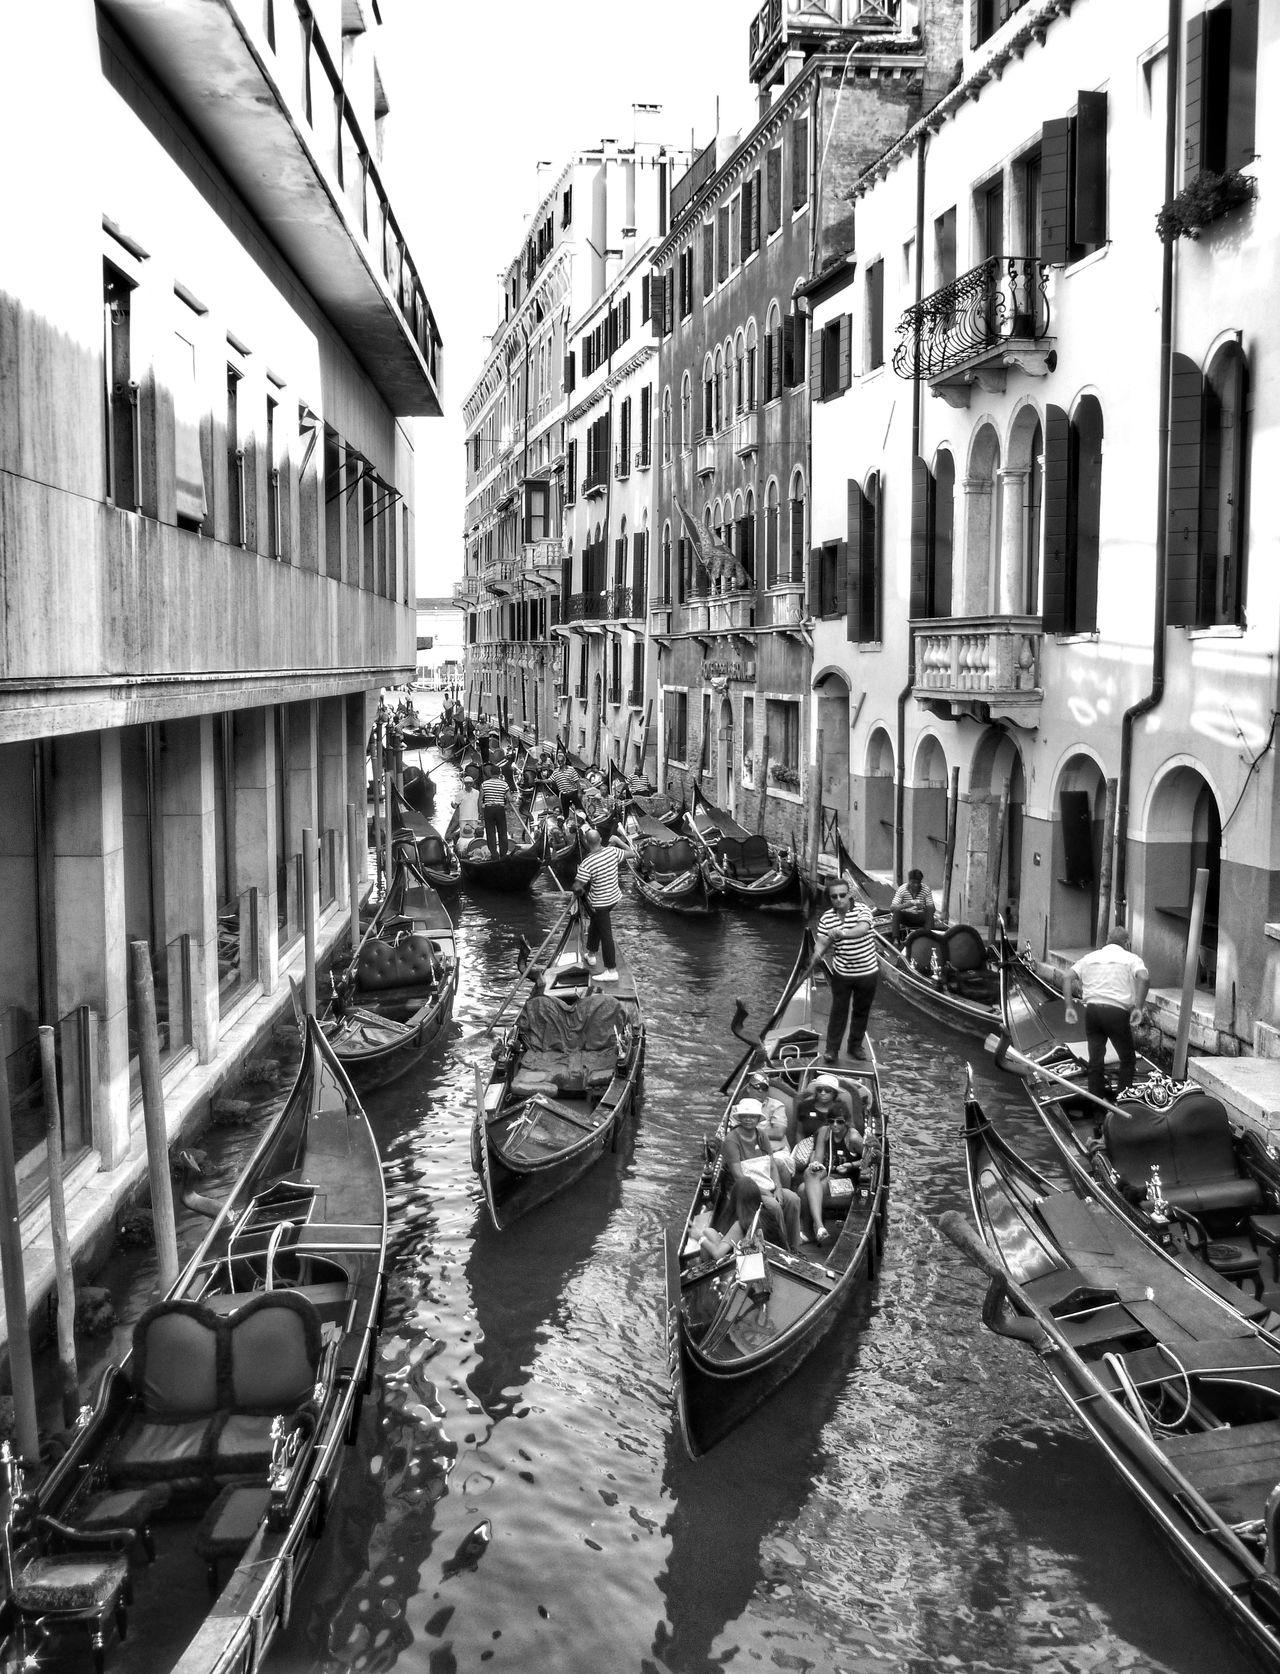 Building Exterior Architecture Transportation Nautical Vessel Canal Moored Mode Of Transport Built Structure Water City Outdoors No People Day Gondola - Traditional Boat Waterfront Leisure Activity Cultures Reflection Dramatic Sky Night Large Group Of People People Nature Sunlight Architecture